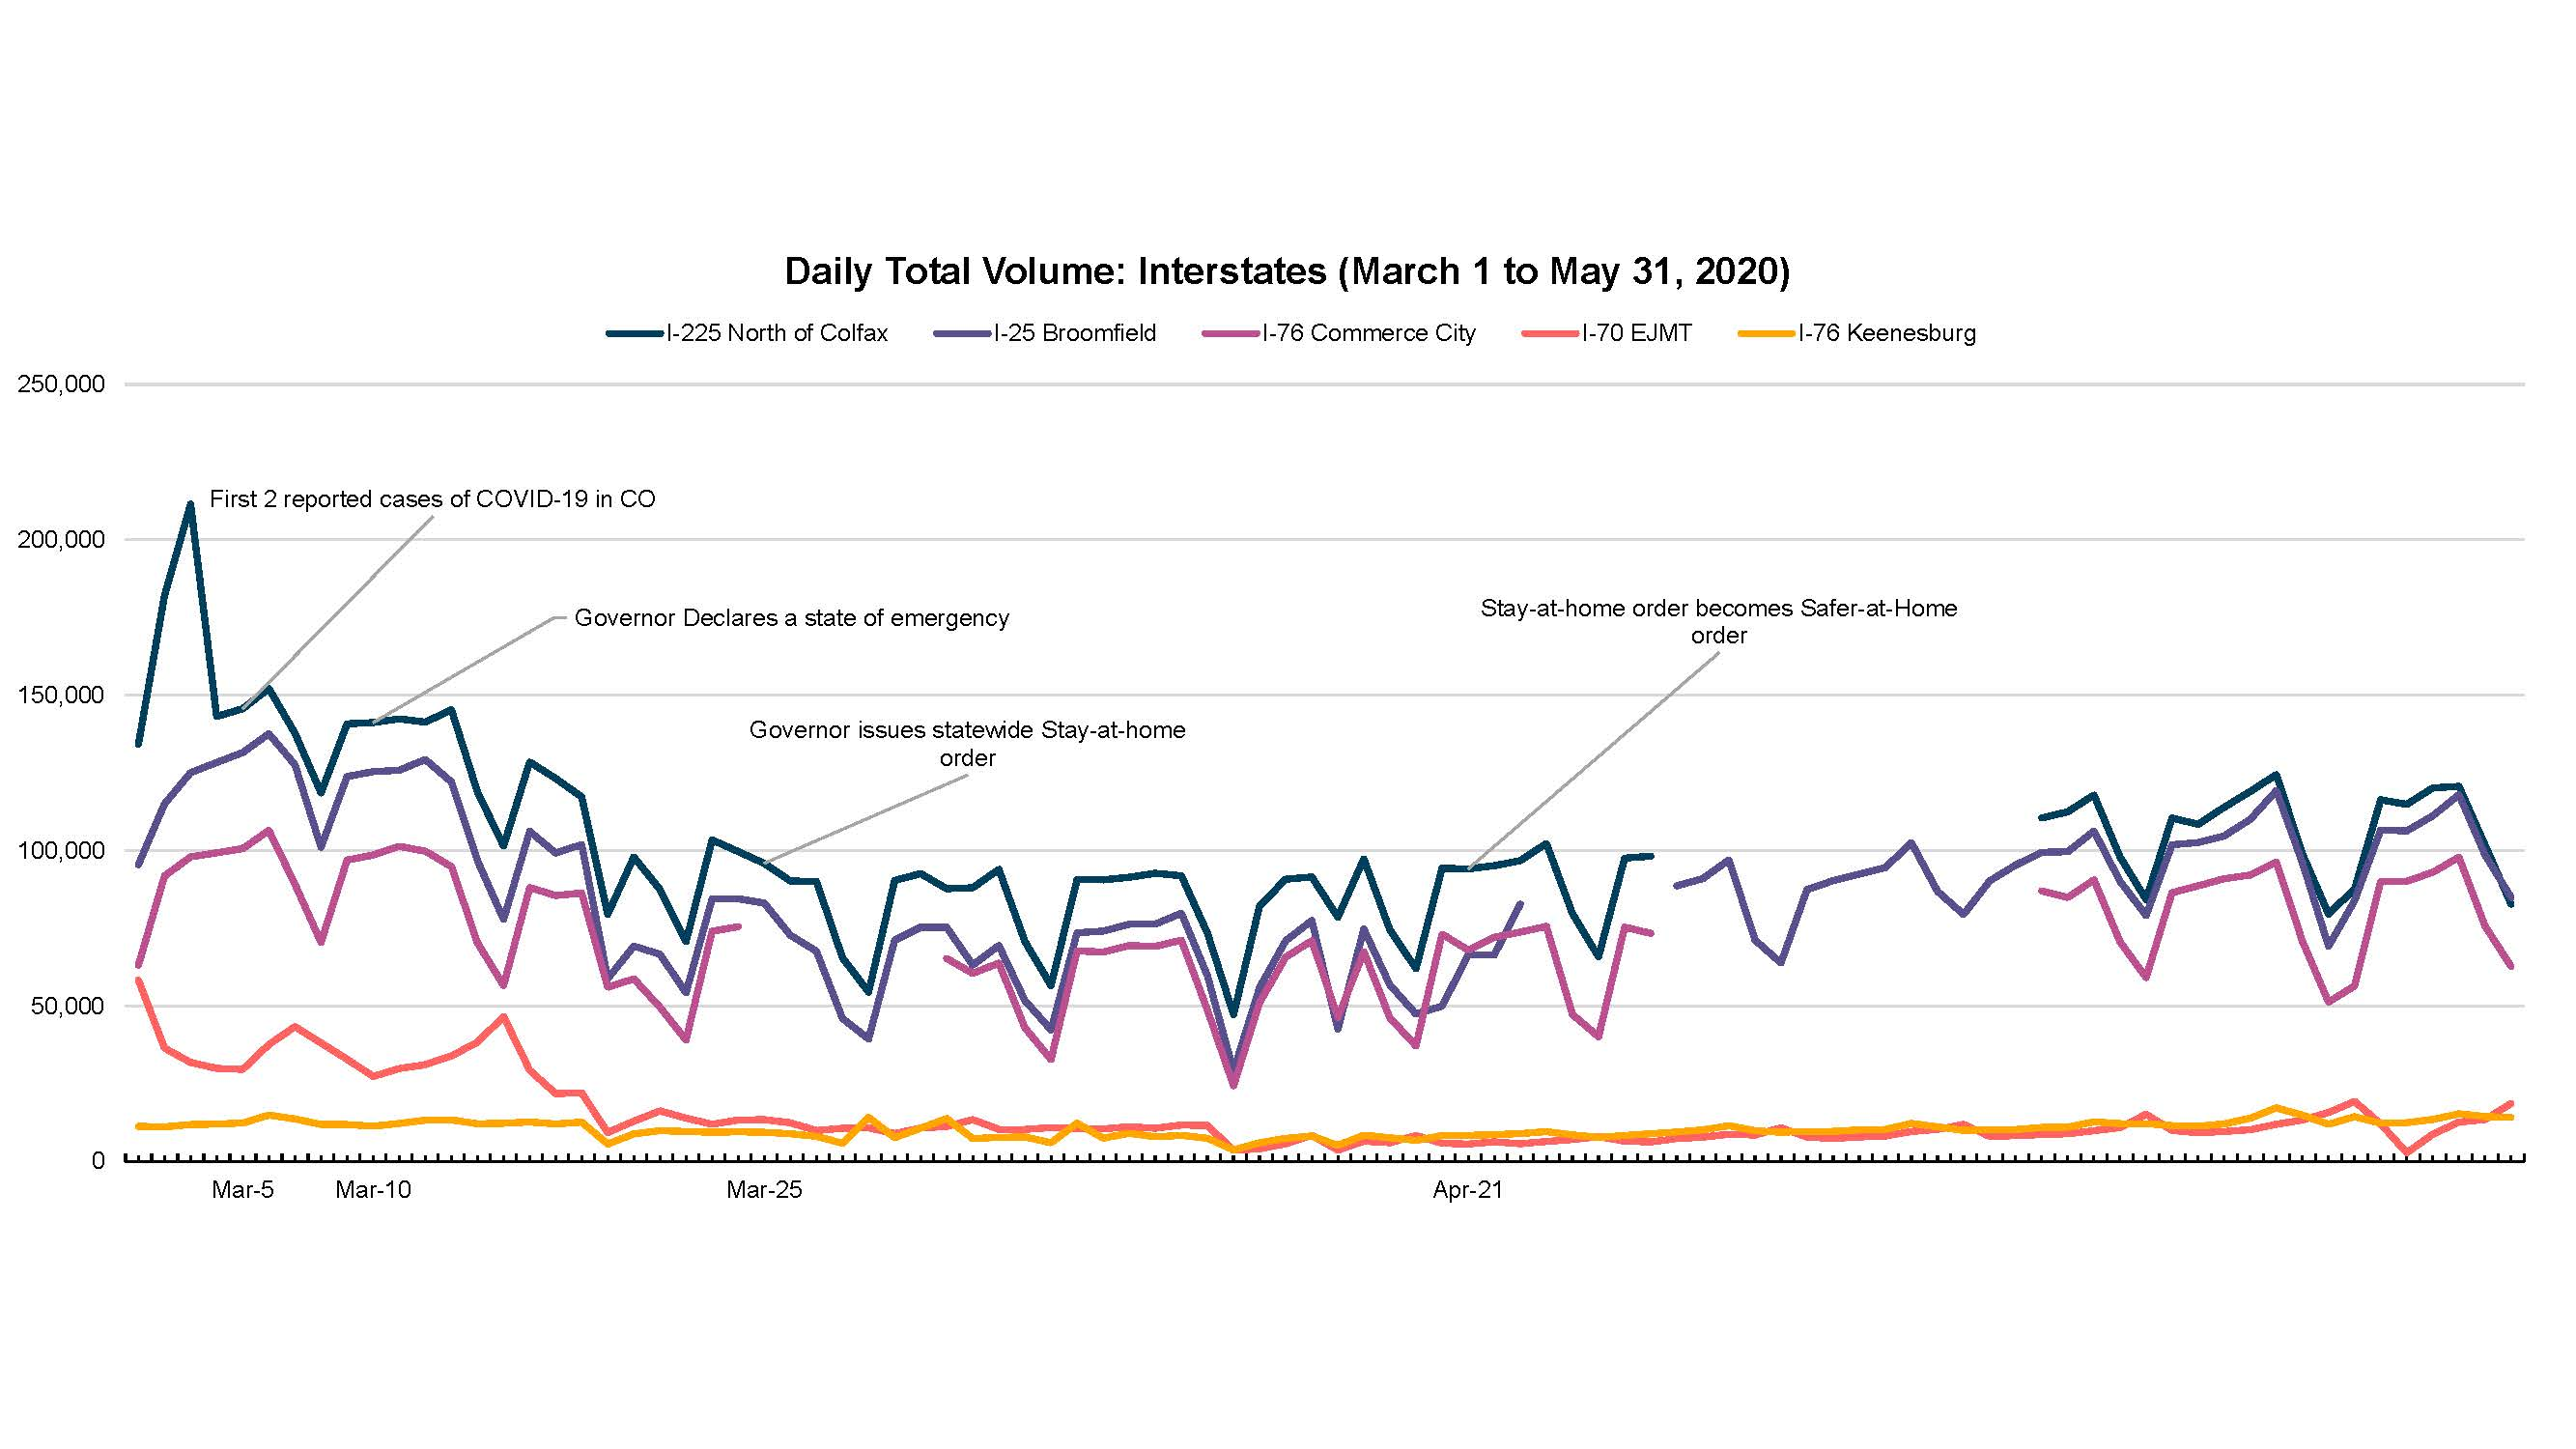 Colorado Interstates Daily Total Traffic Volumes March 1 through May 31, 2020